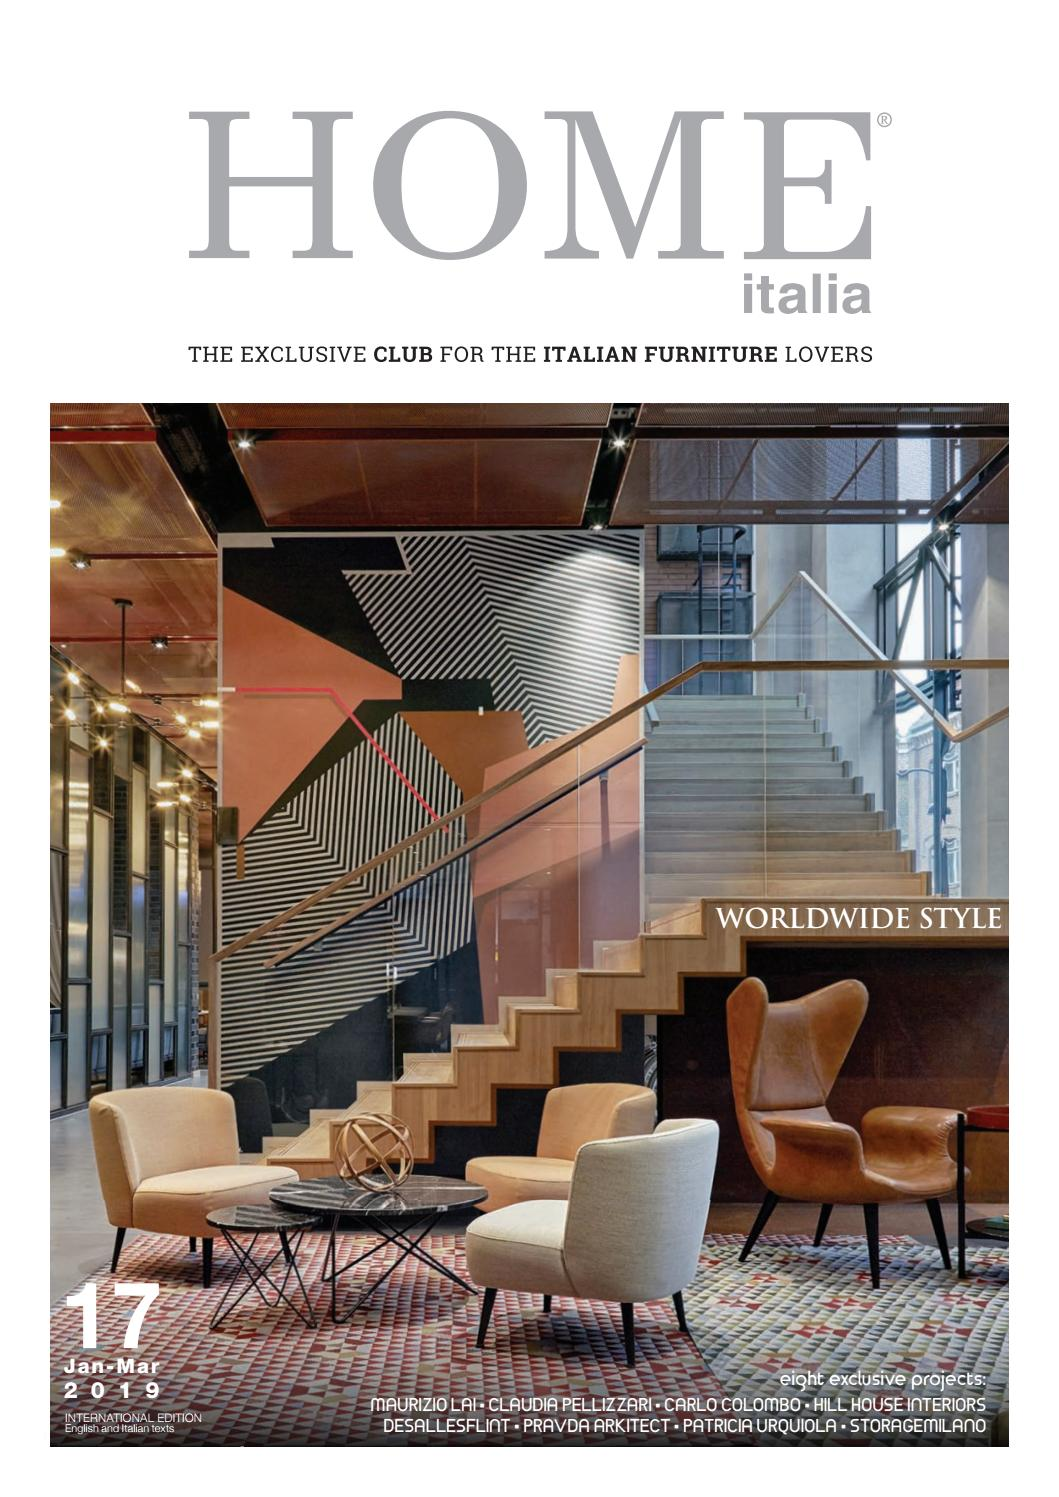 Allestimento Casa Della Sposa home italia 17th edition by home italia - issuu